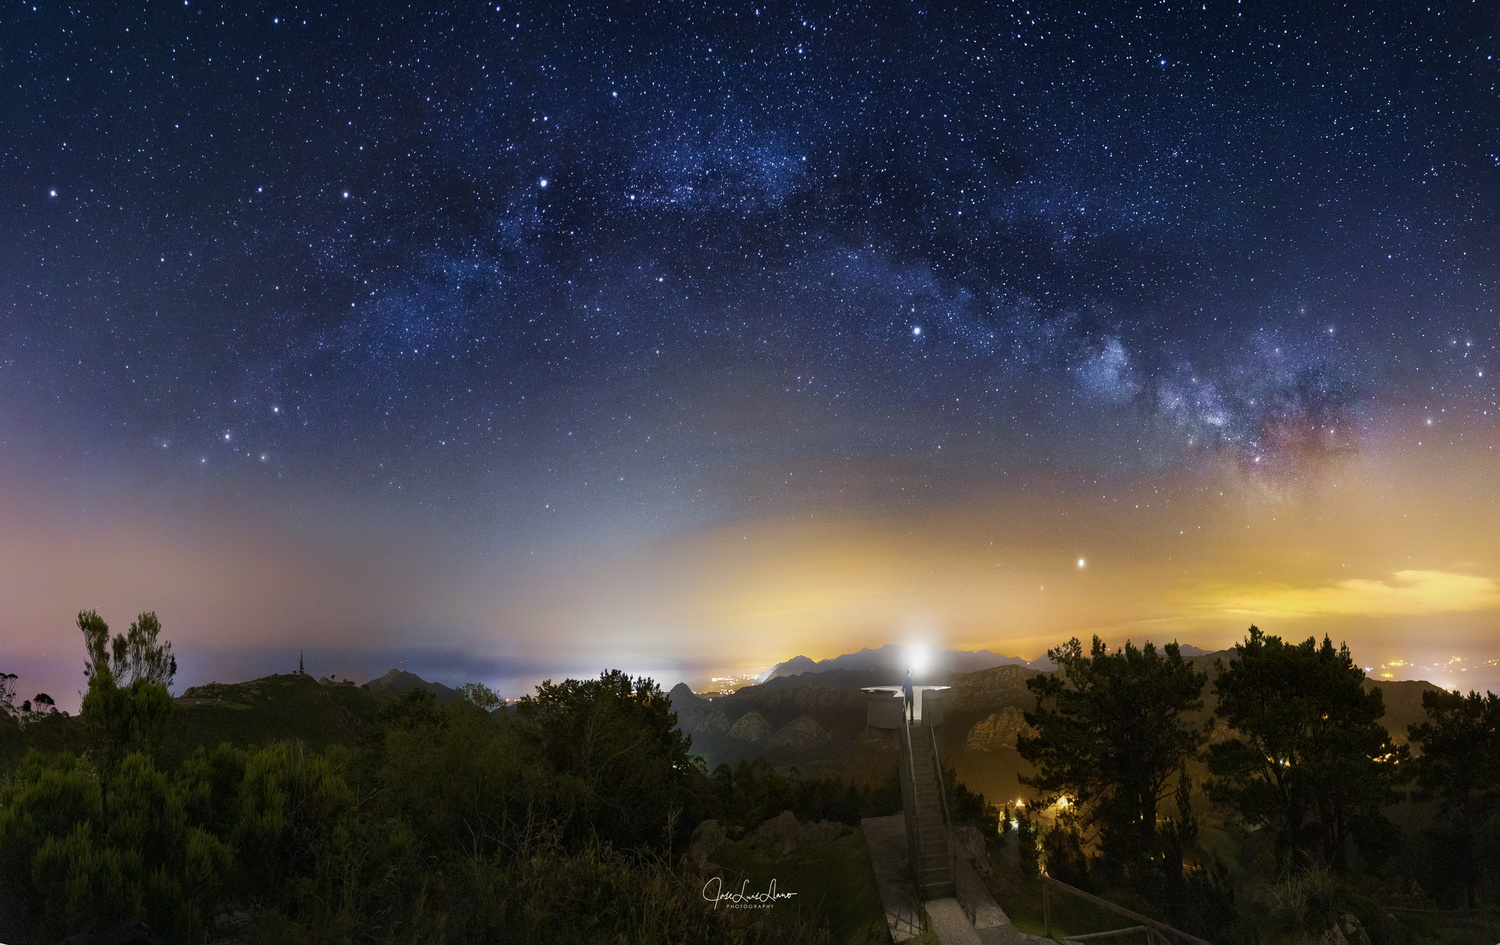 """A balcony to the stars"" by Jose Luis Llano"